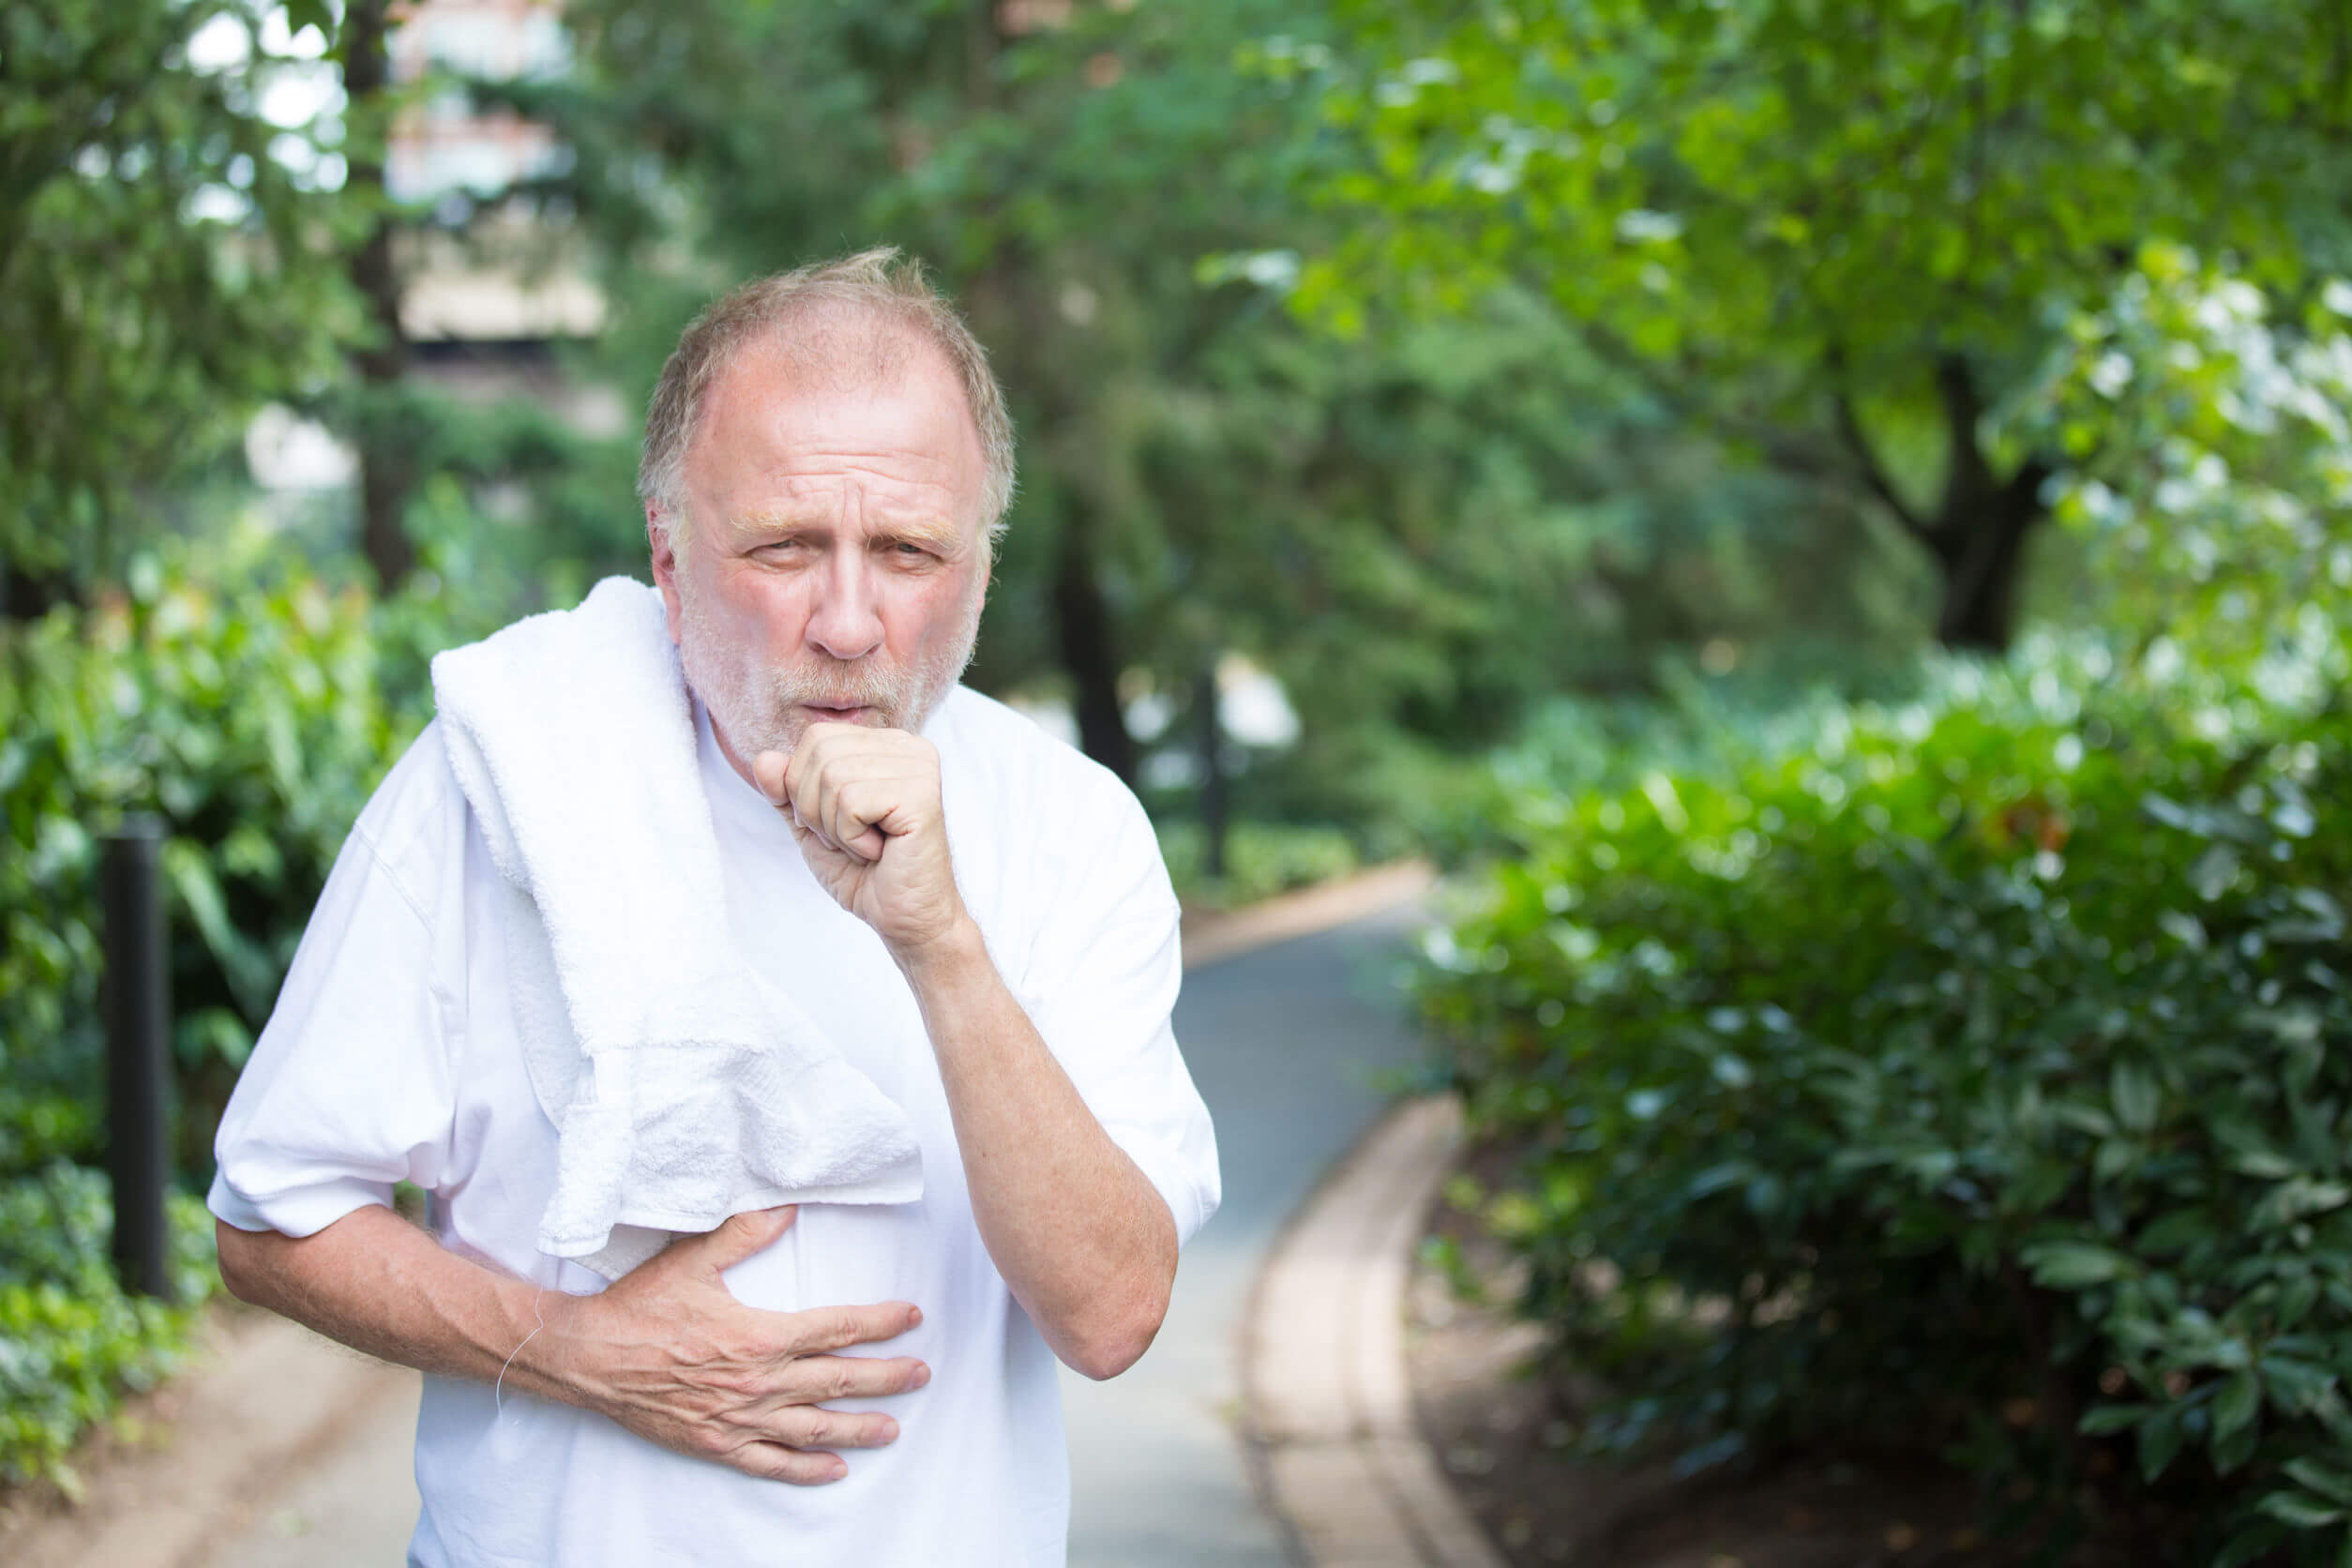 Infections are a common cause of swollen glands.